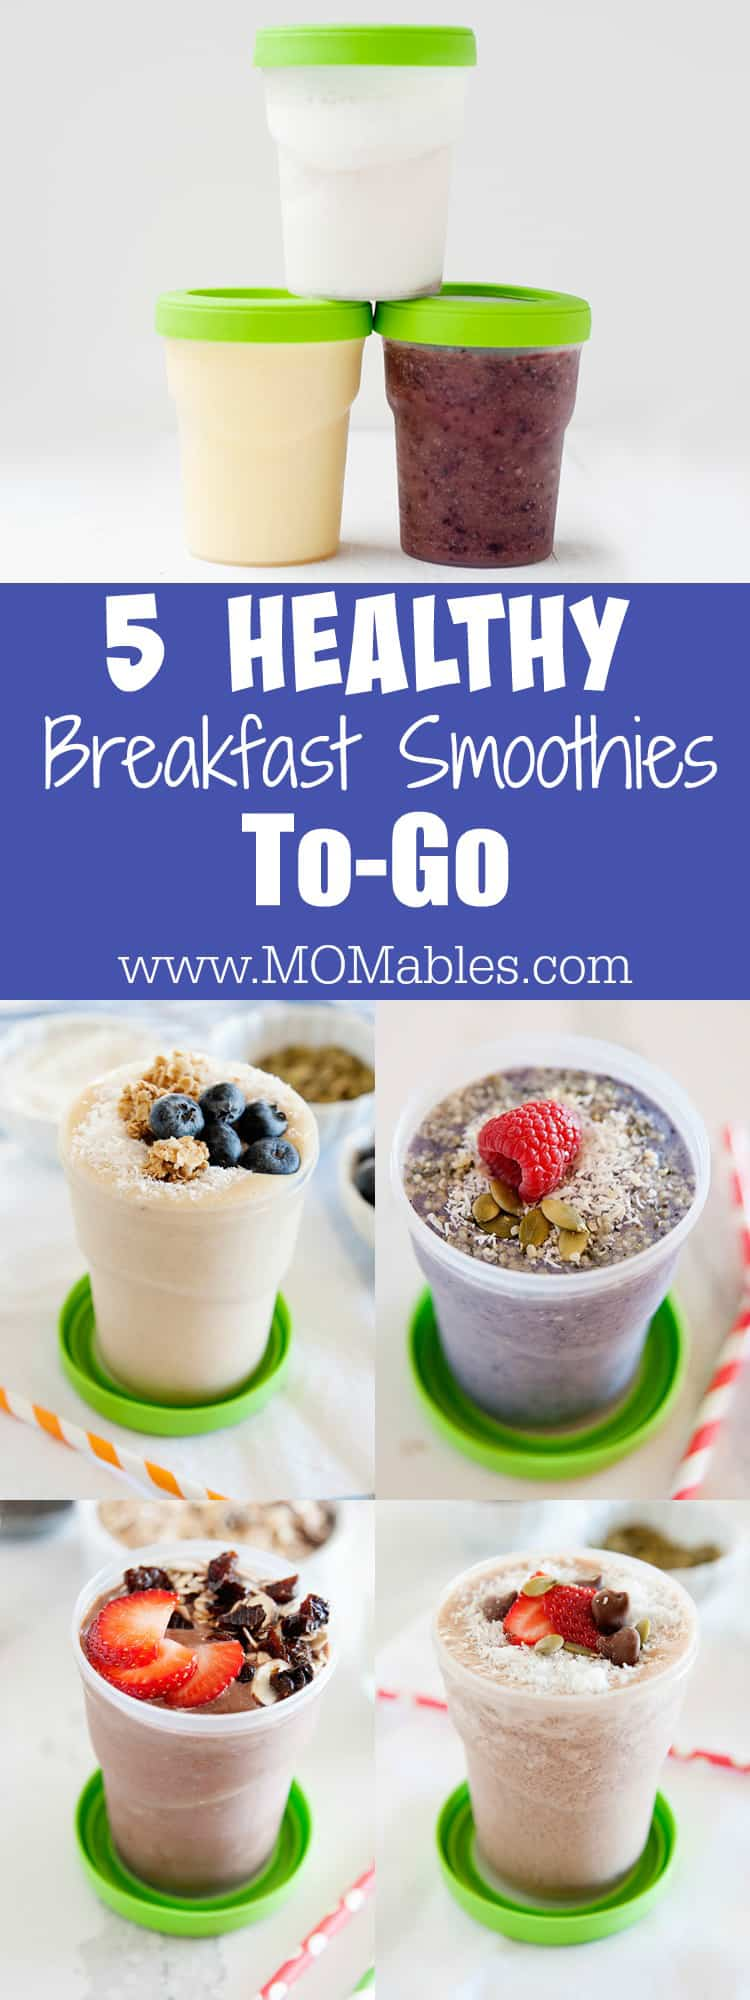 5 Healthy Breakfast Smoothies Momables Mealtime